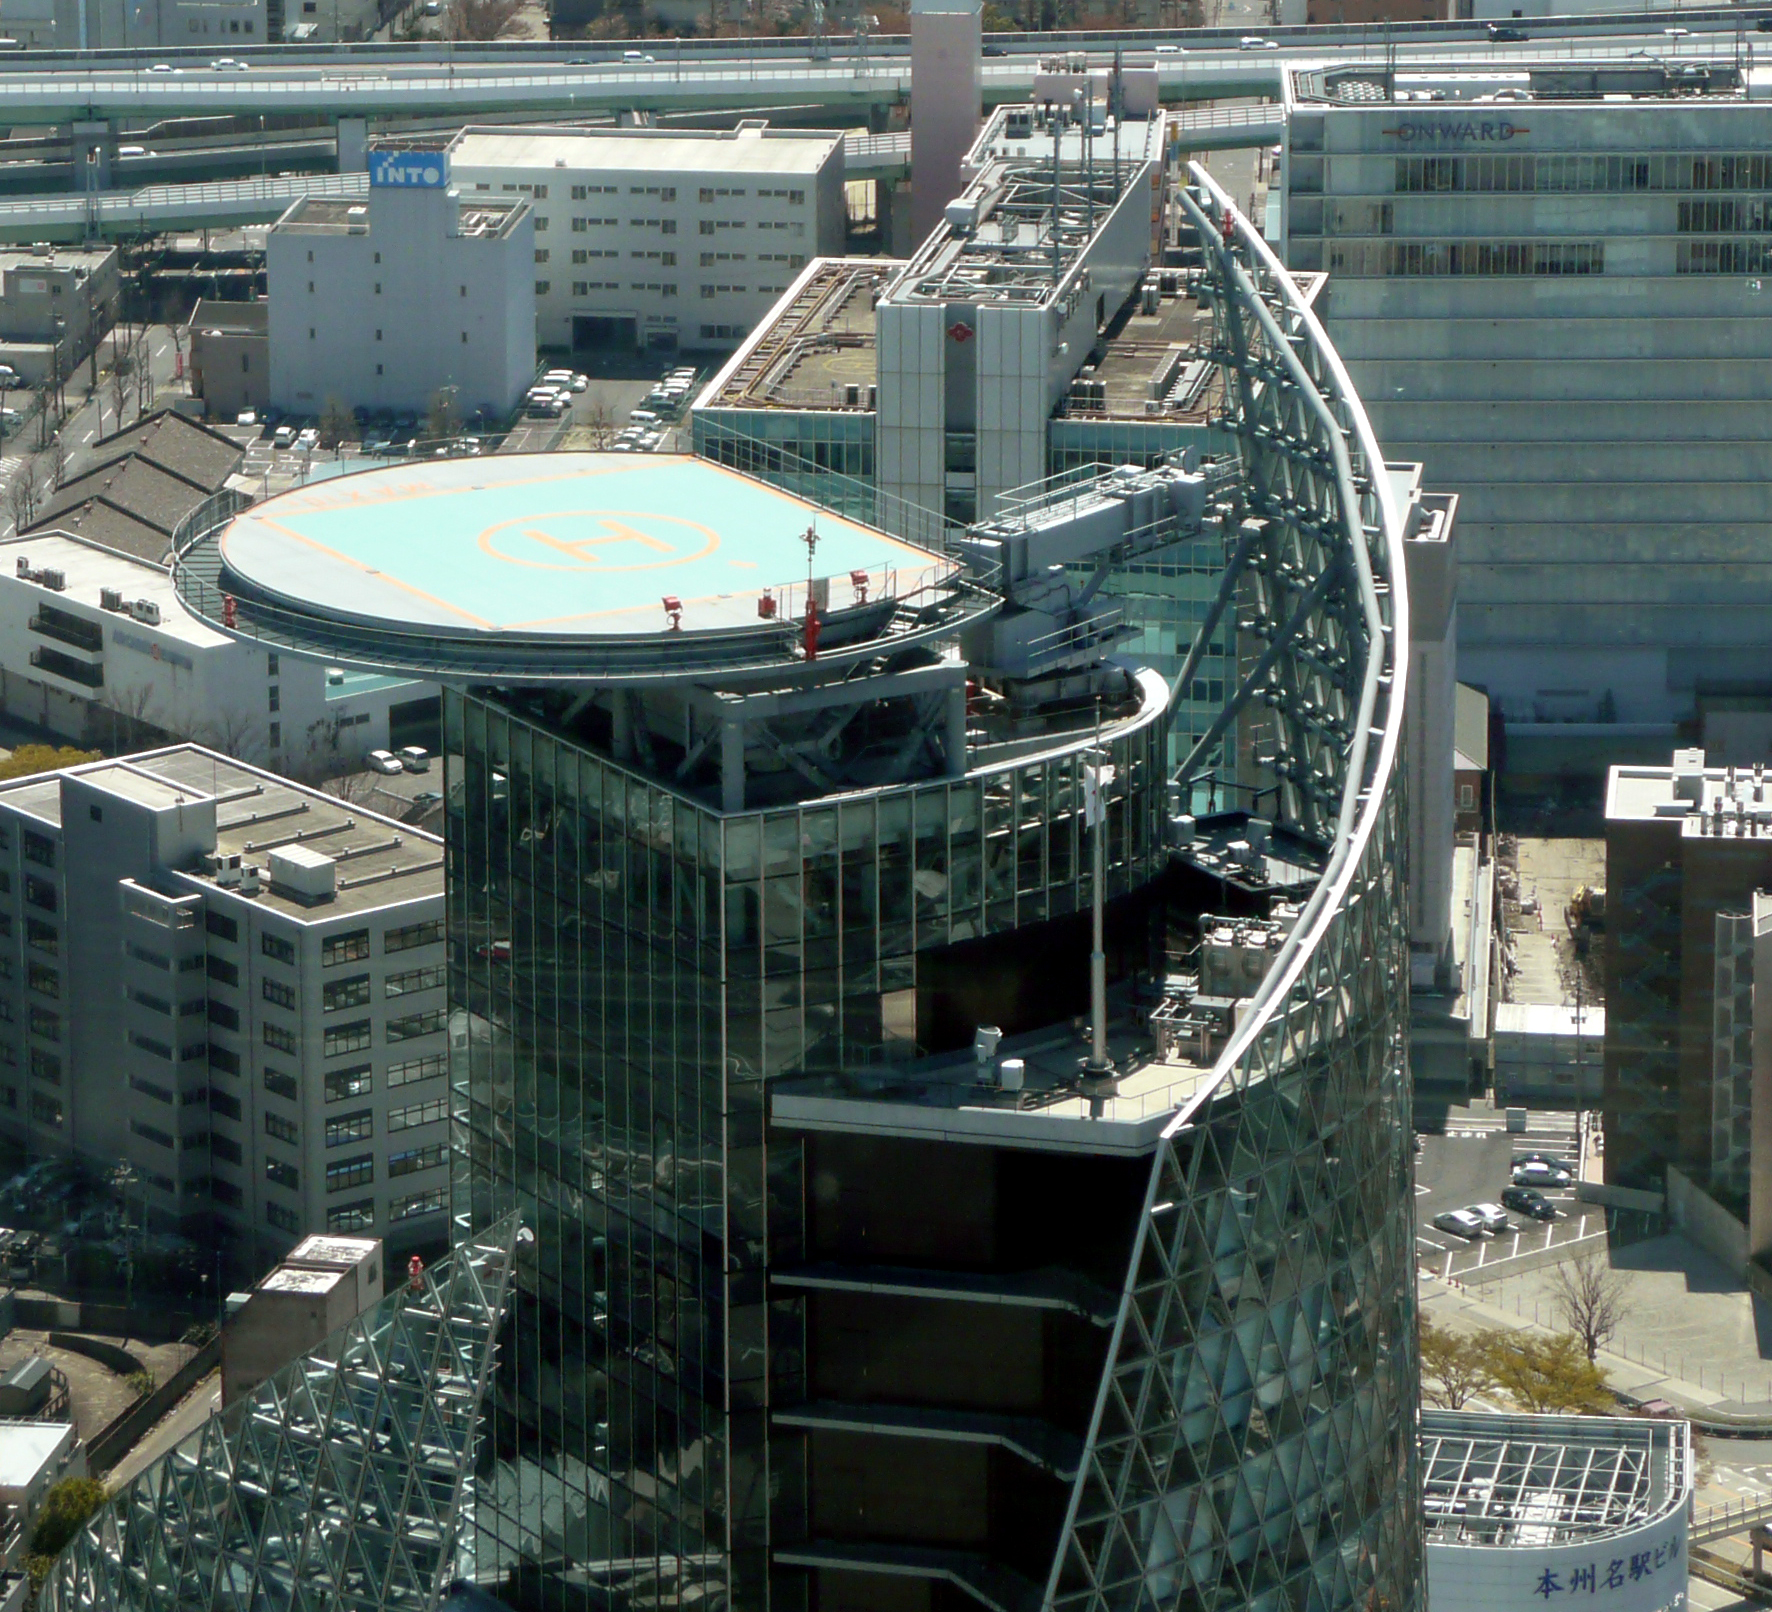 http://upload.wikimedia.org/wikipedia/commons/c/cd/Mode_Gakuen_Spiral_Towers_Nagoya.jpg